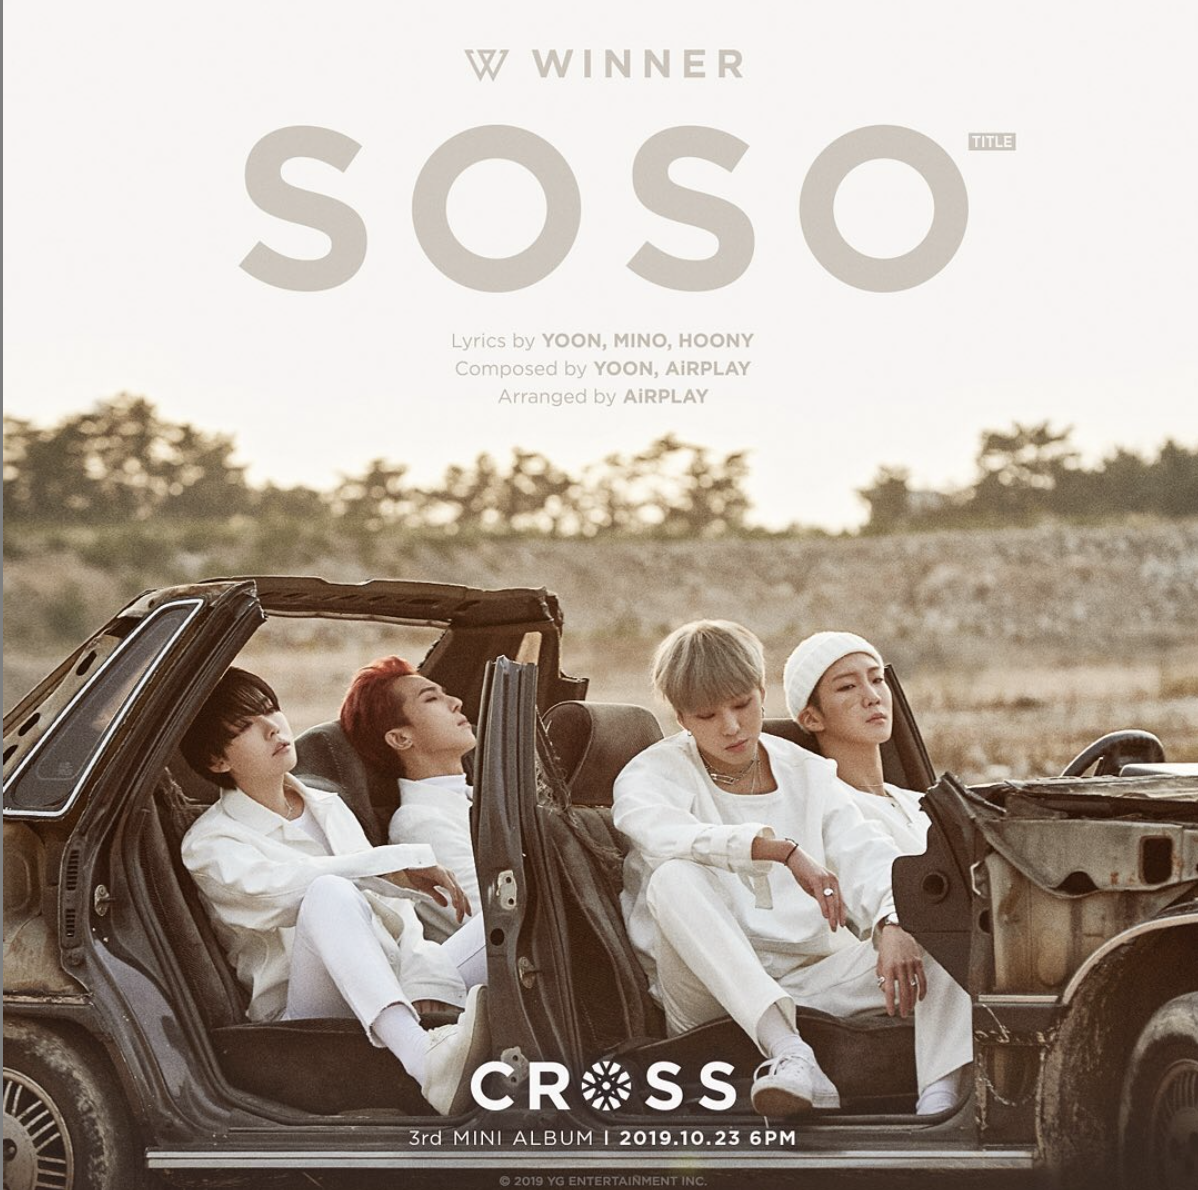 winner-cross-soso